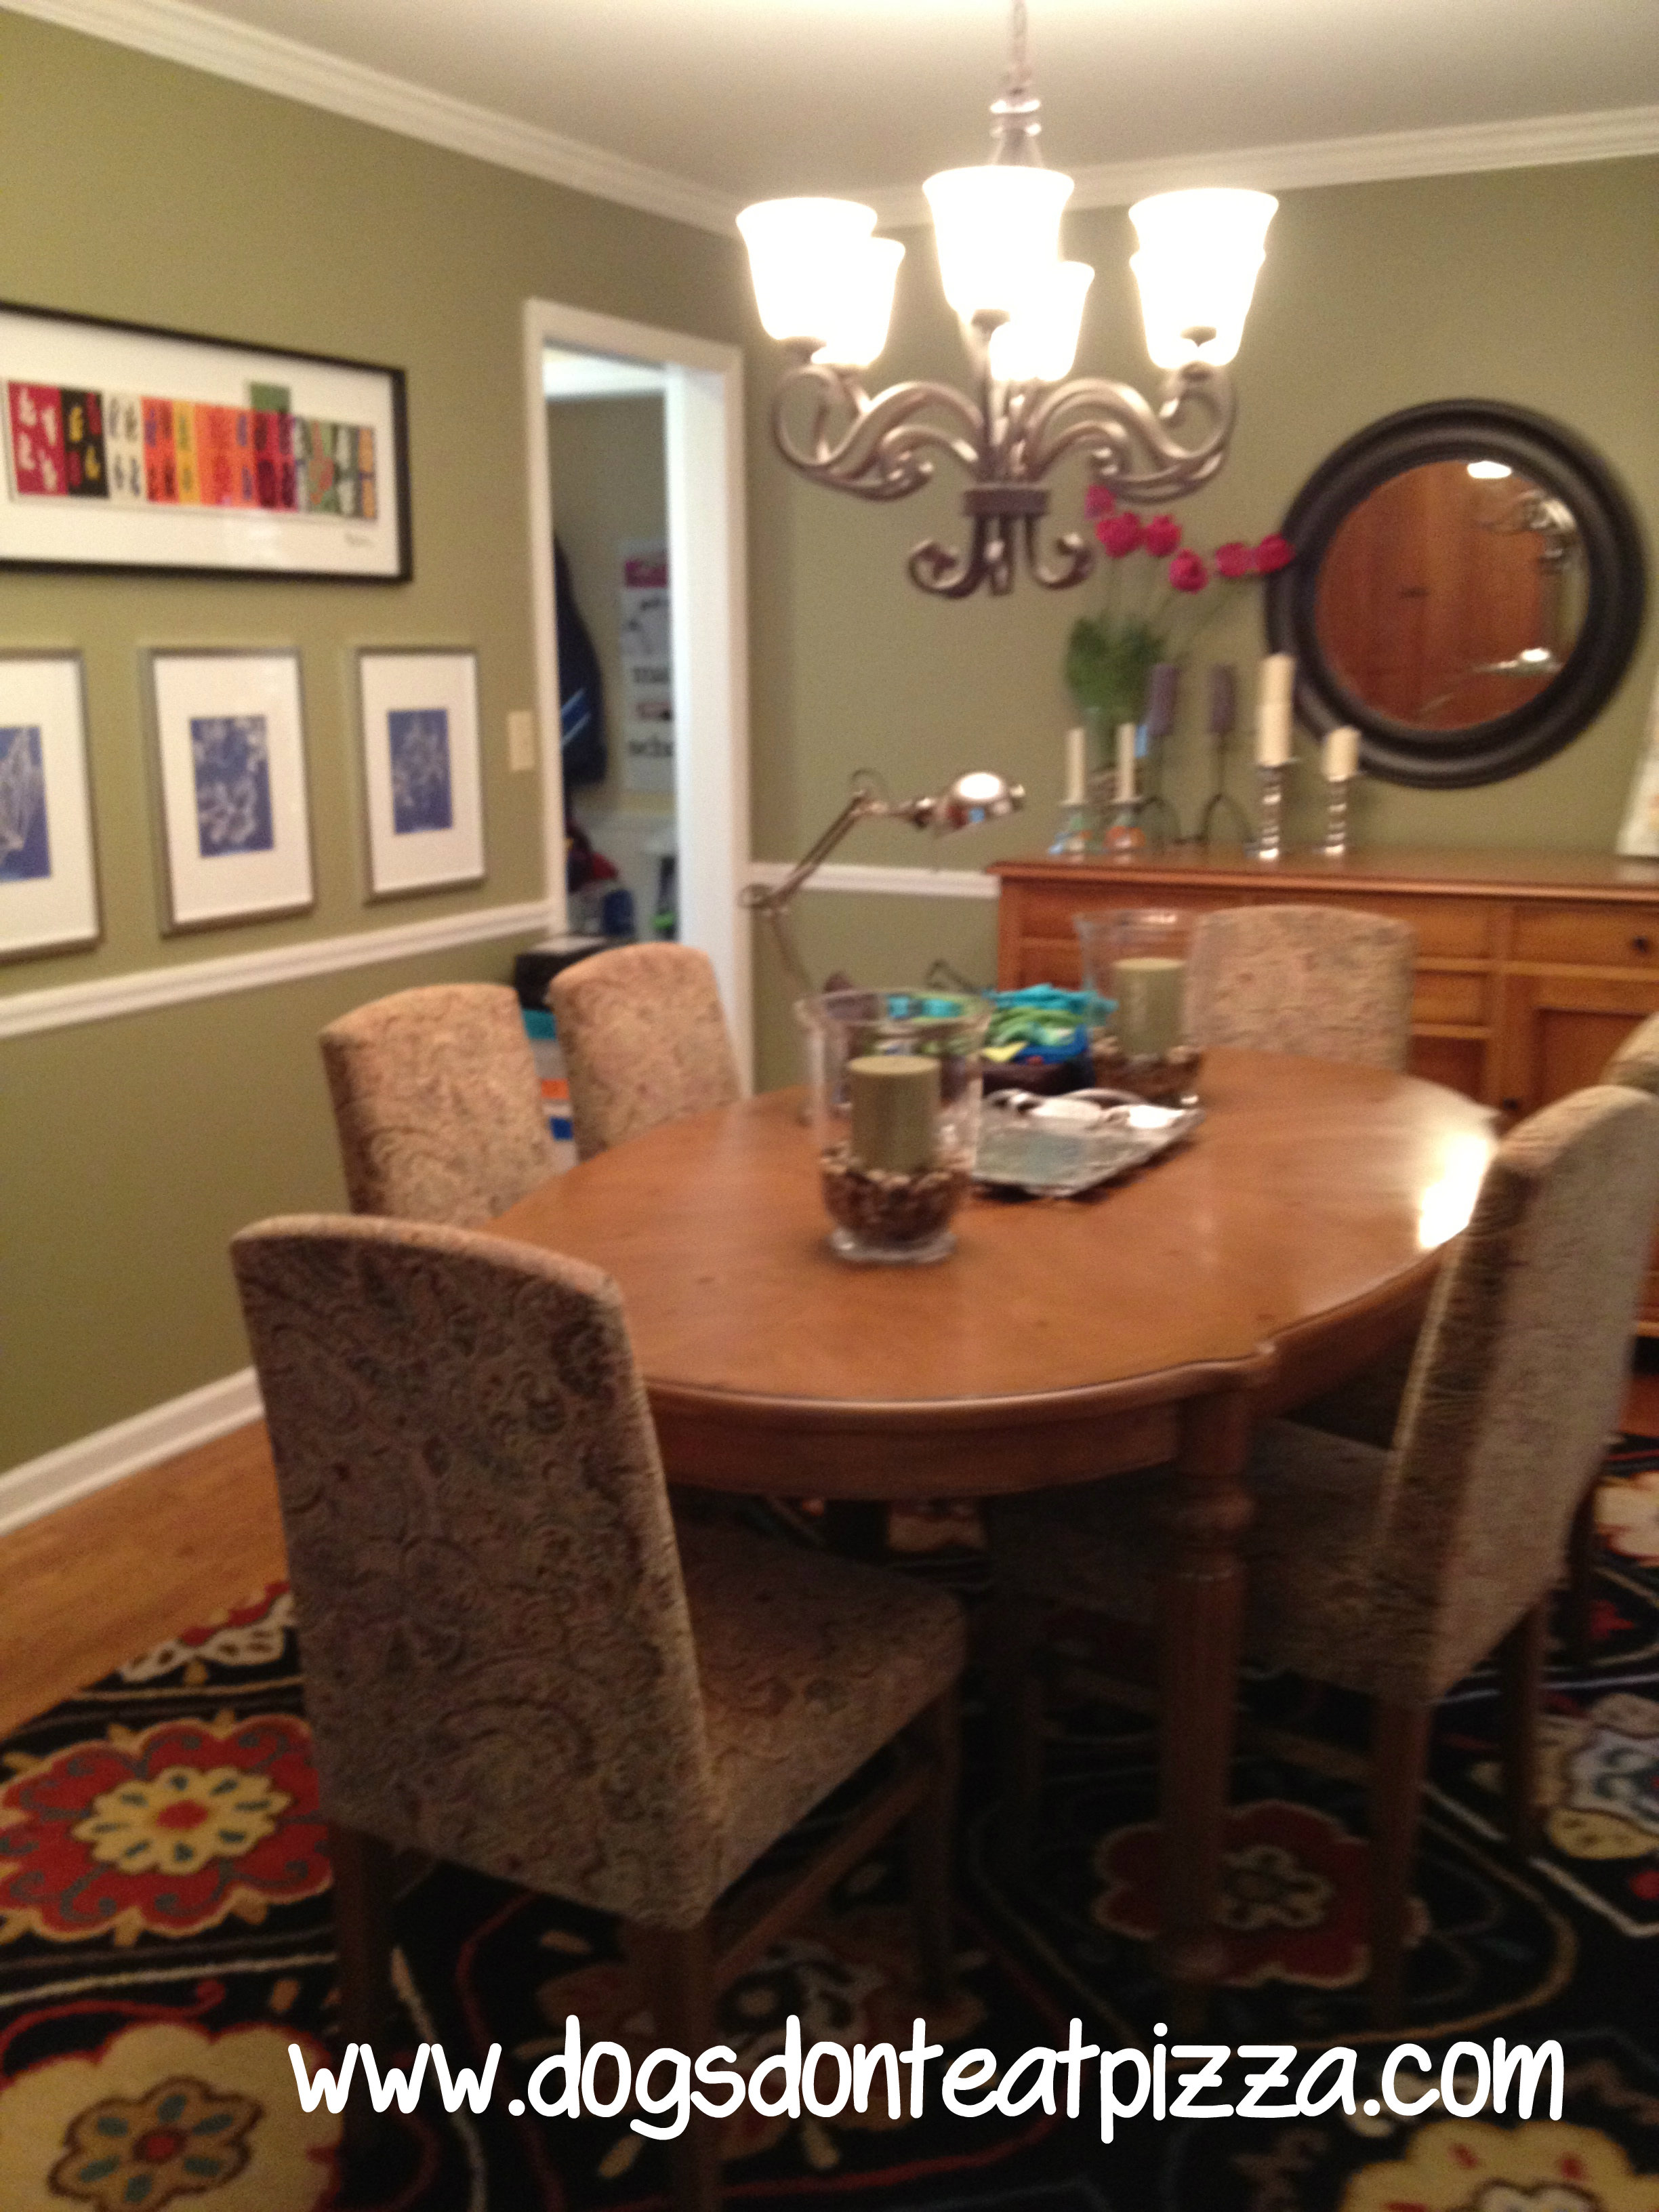 Issues when designing a dining room - dining room in old house - thediybungalow.com